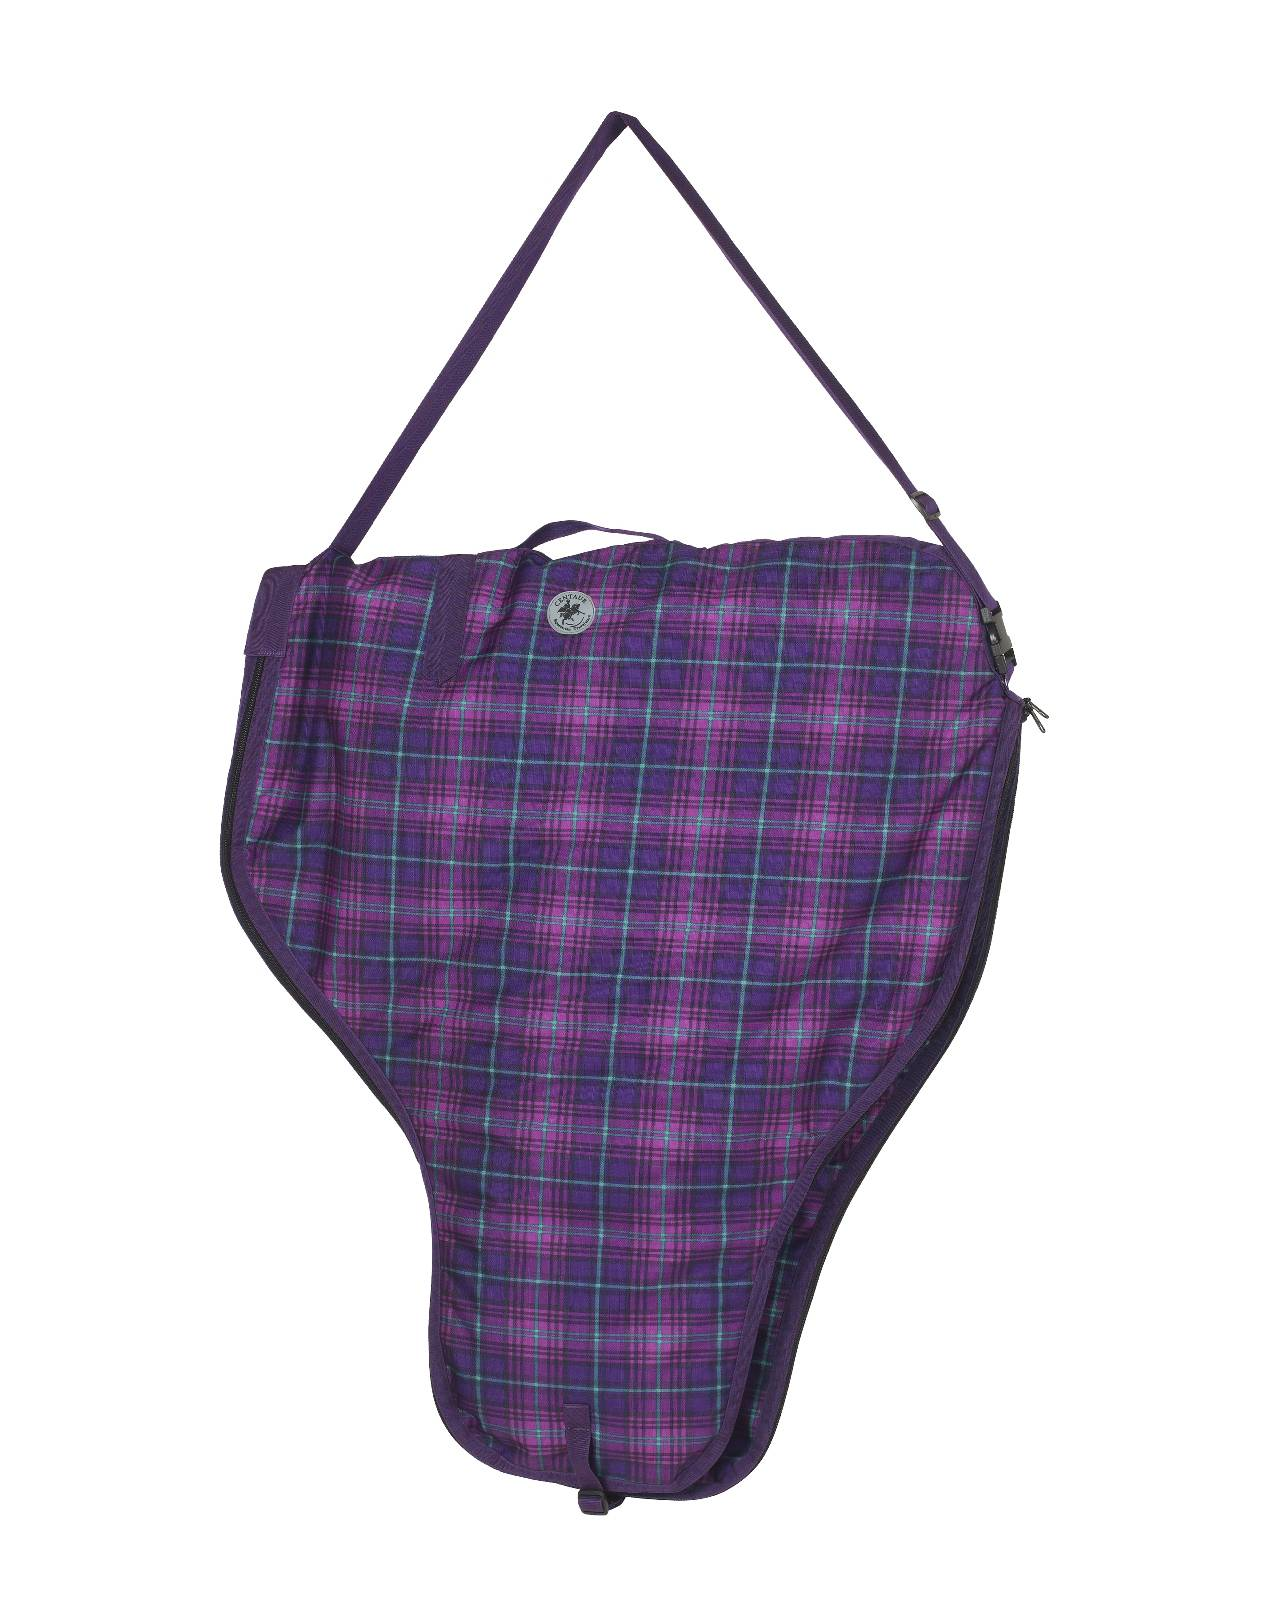 Centaur Western Saddle Carry Bag - Plaid